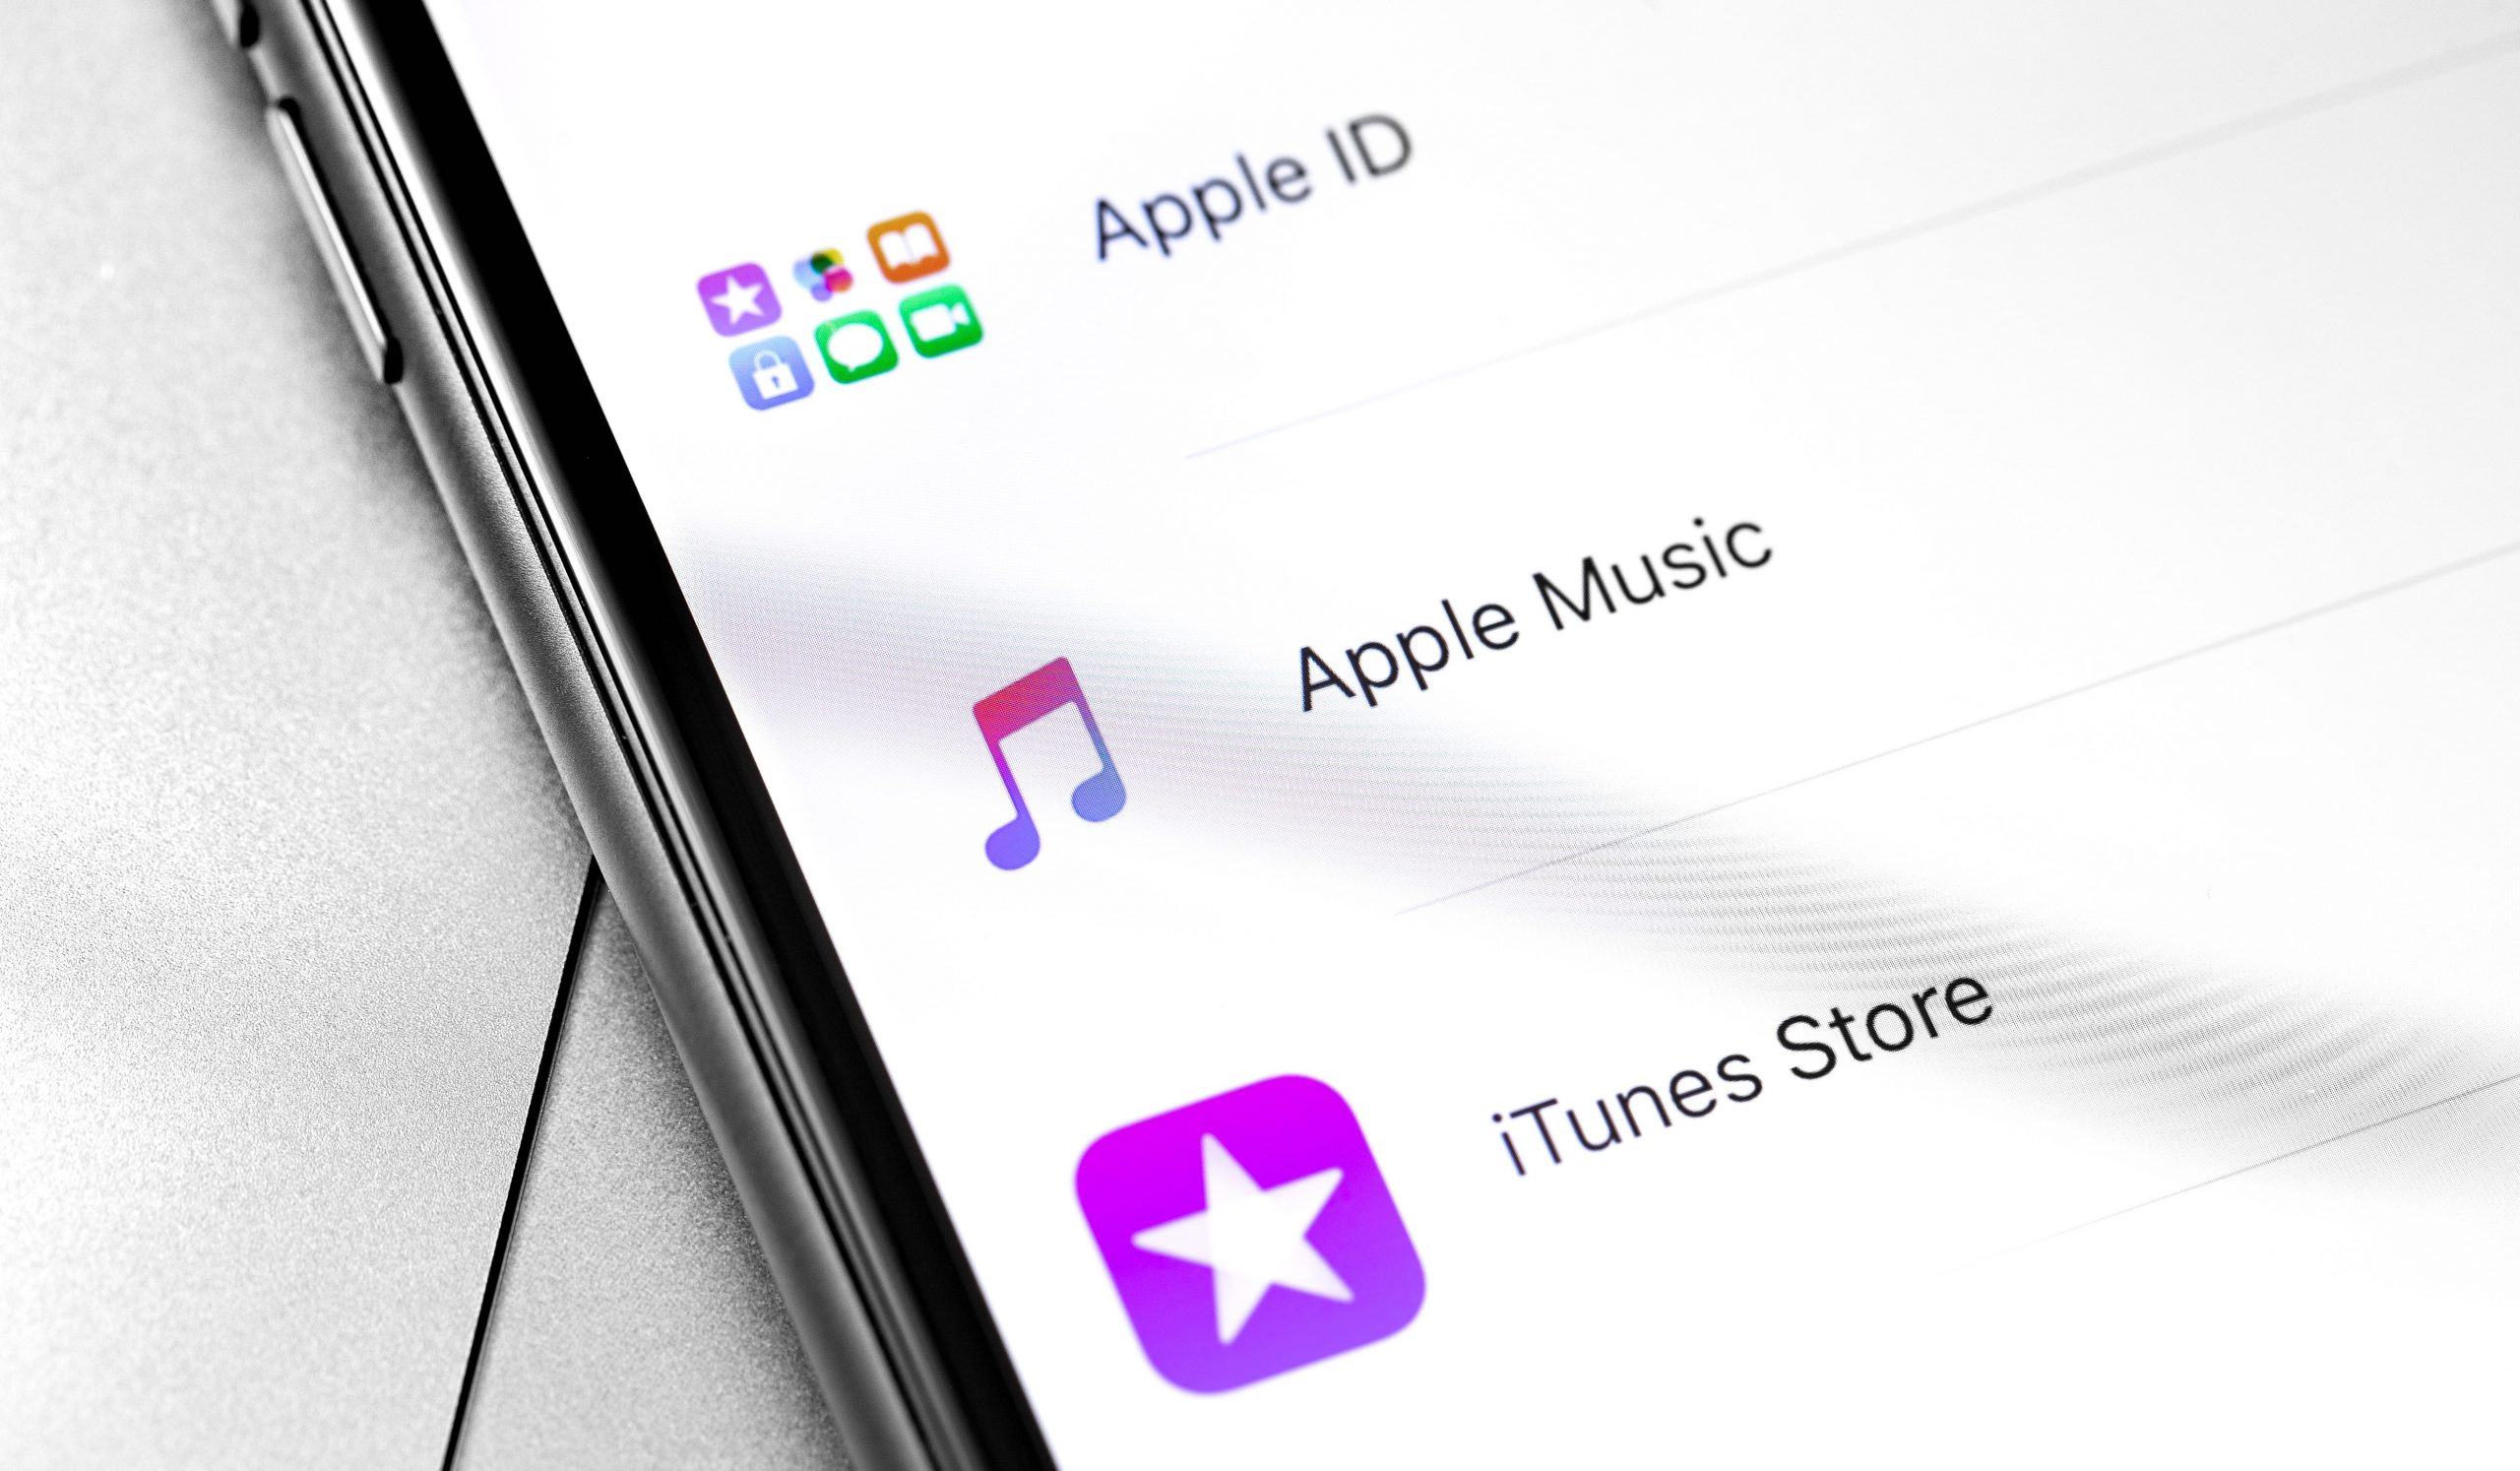 Tela de iPhone com opções de Apple ID, Apple Music e iTunes Store.